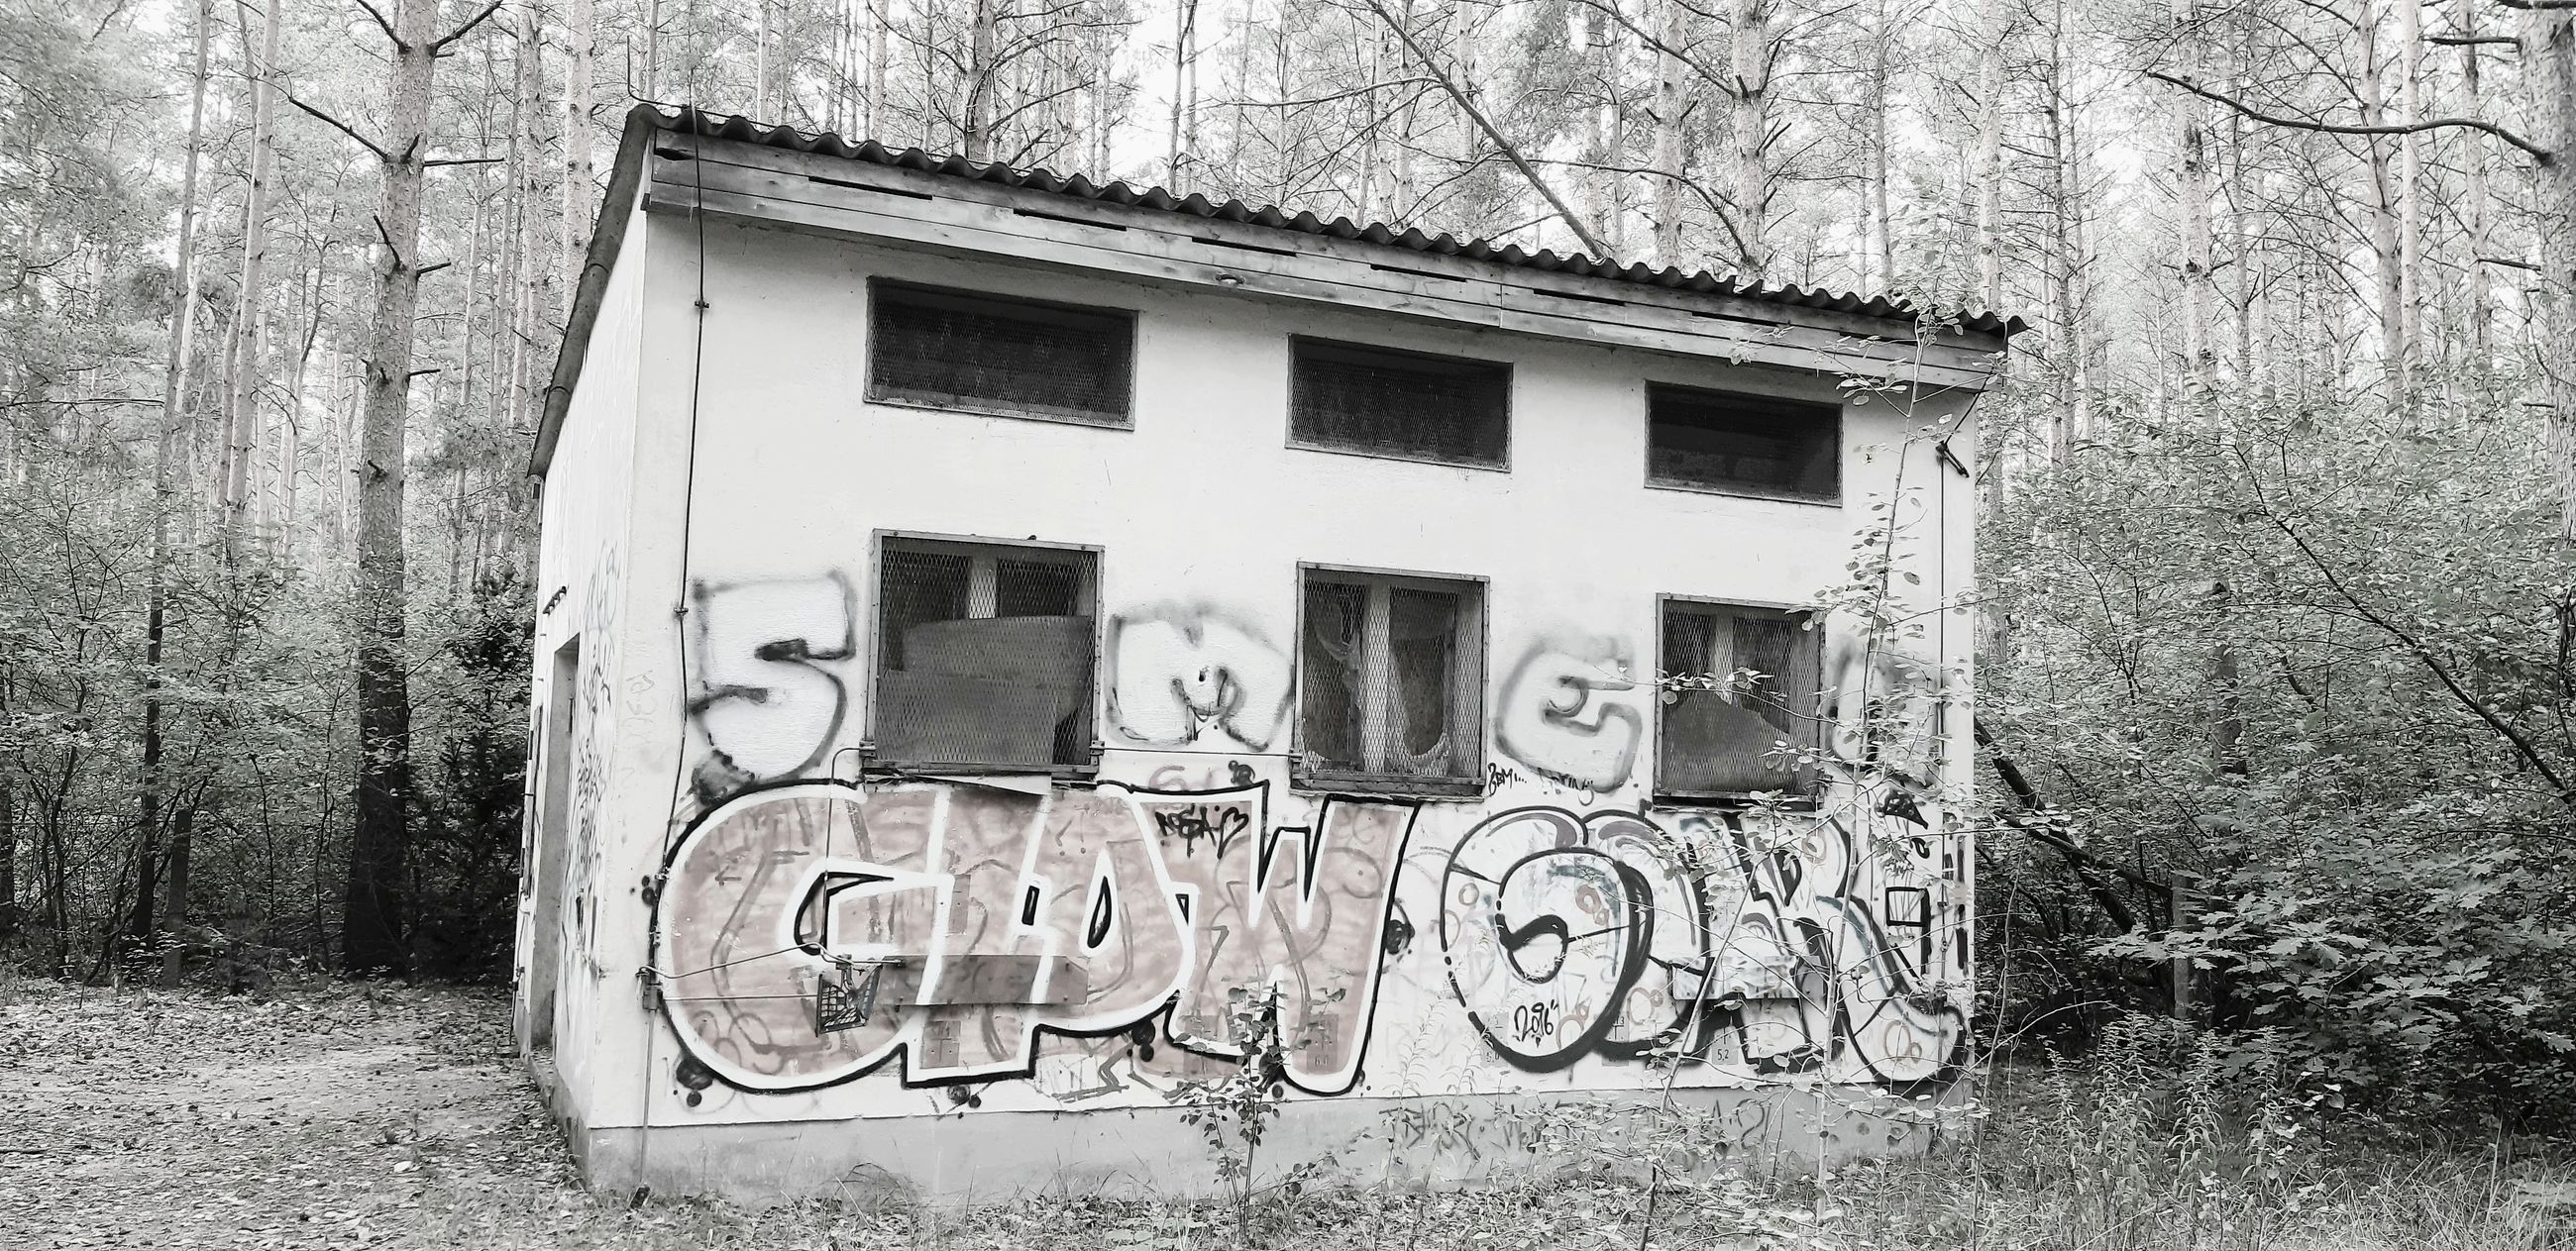 tree, built structure, plant, architecture, building exterior, day, no people, text, communication, nature, western script, outdoors, window, old, building, forest, wall - building feature, land, graffiti, abandoned, message